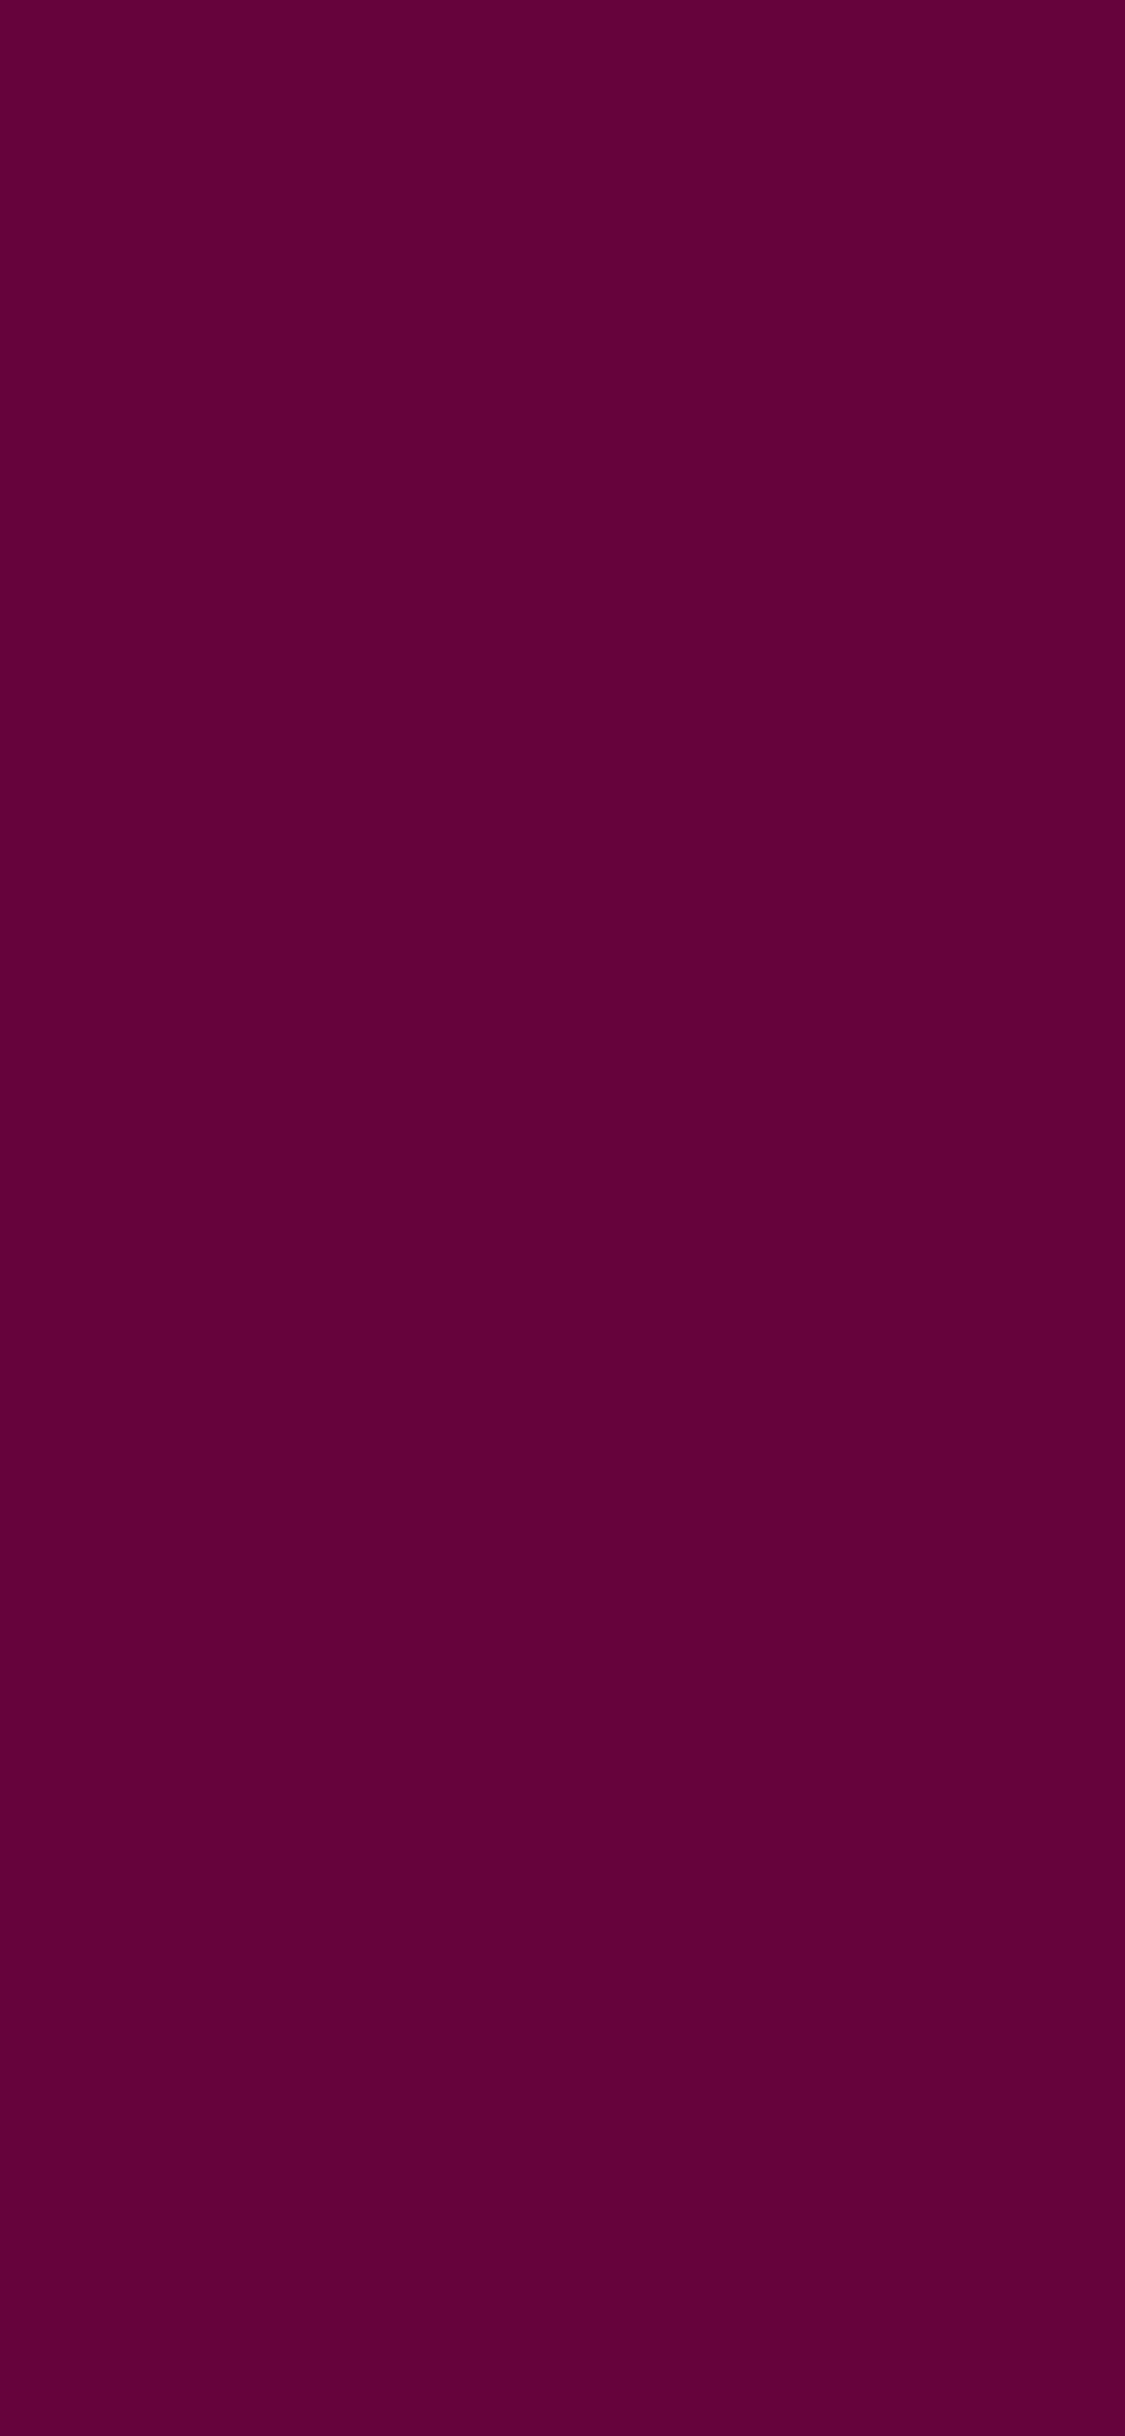 1125x2436 Tyrian Purple Solid Color Background